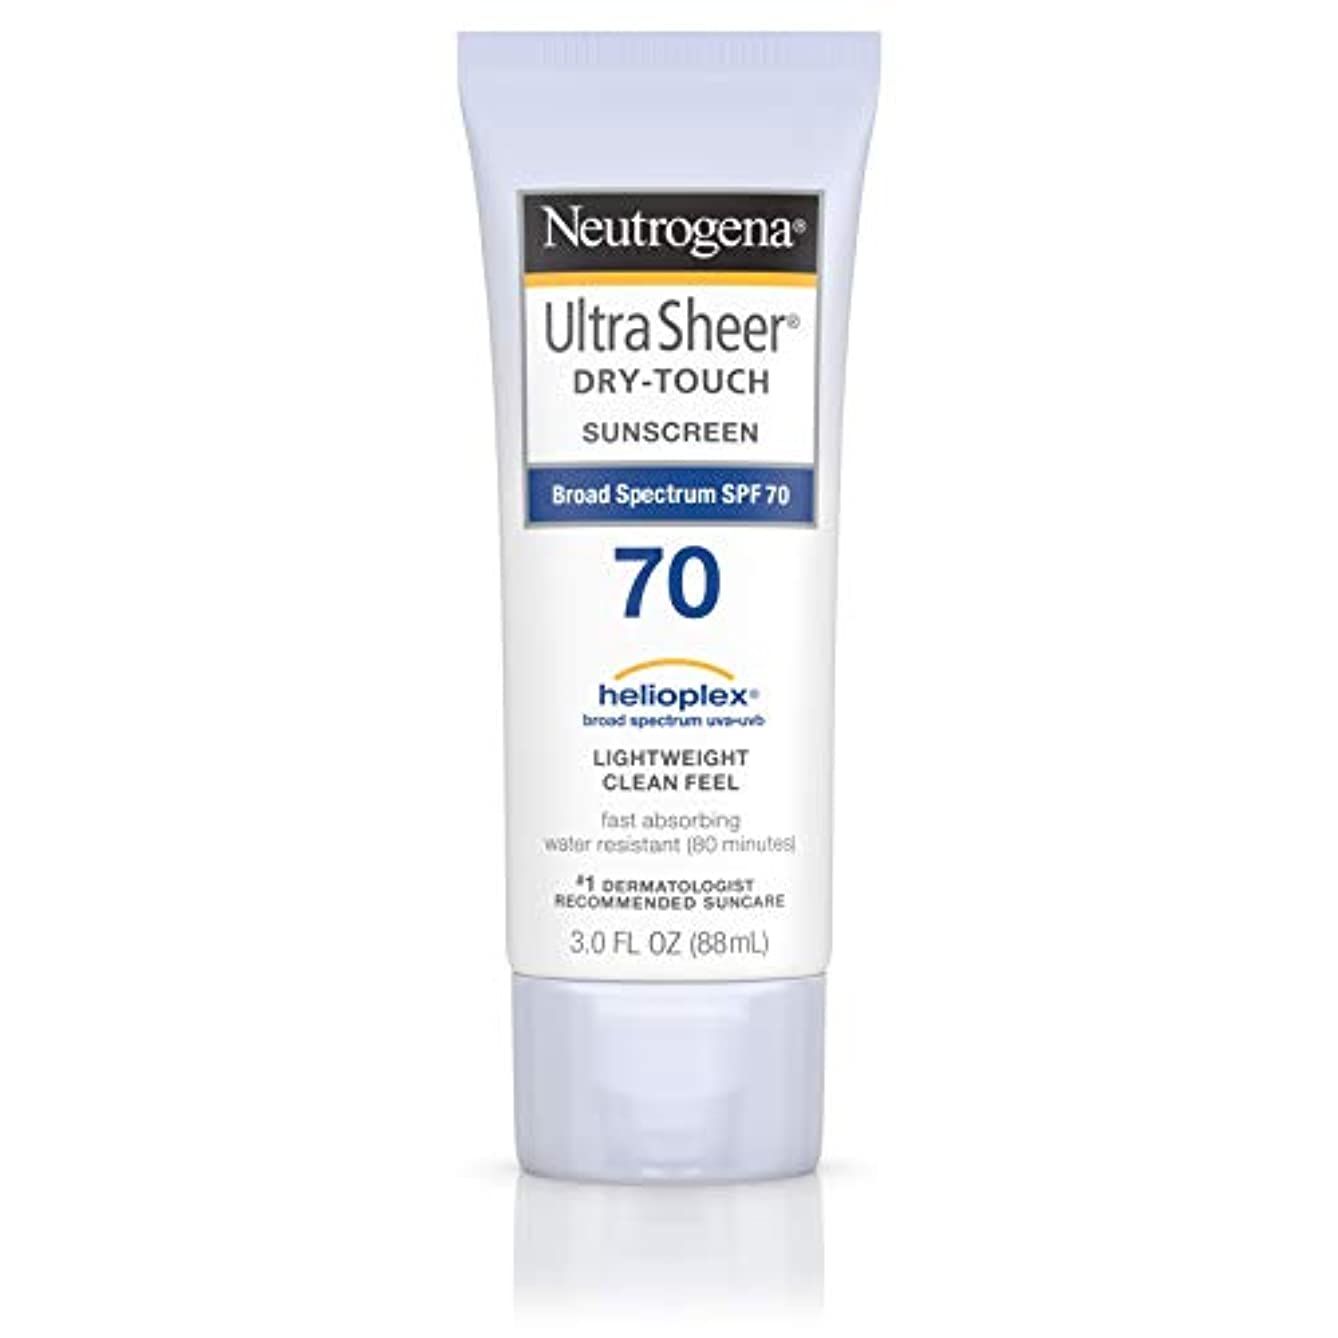 良さ旅客粘液Neutrogena Ultra Sheer Dry-Touch Sunscreen, SPF 70, 88 ml (並行輸入品)